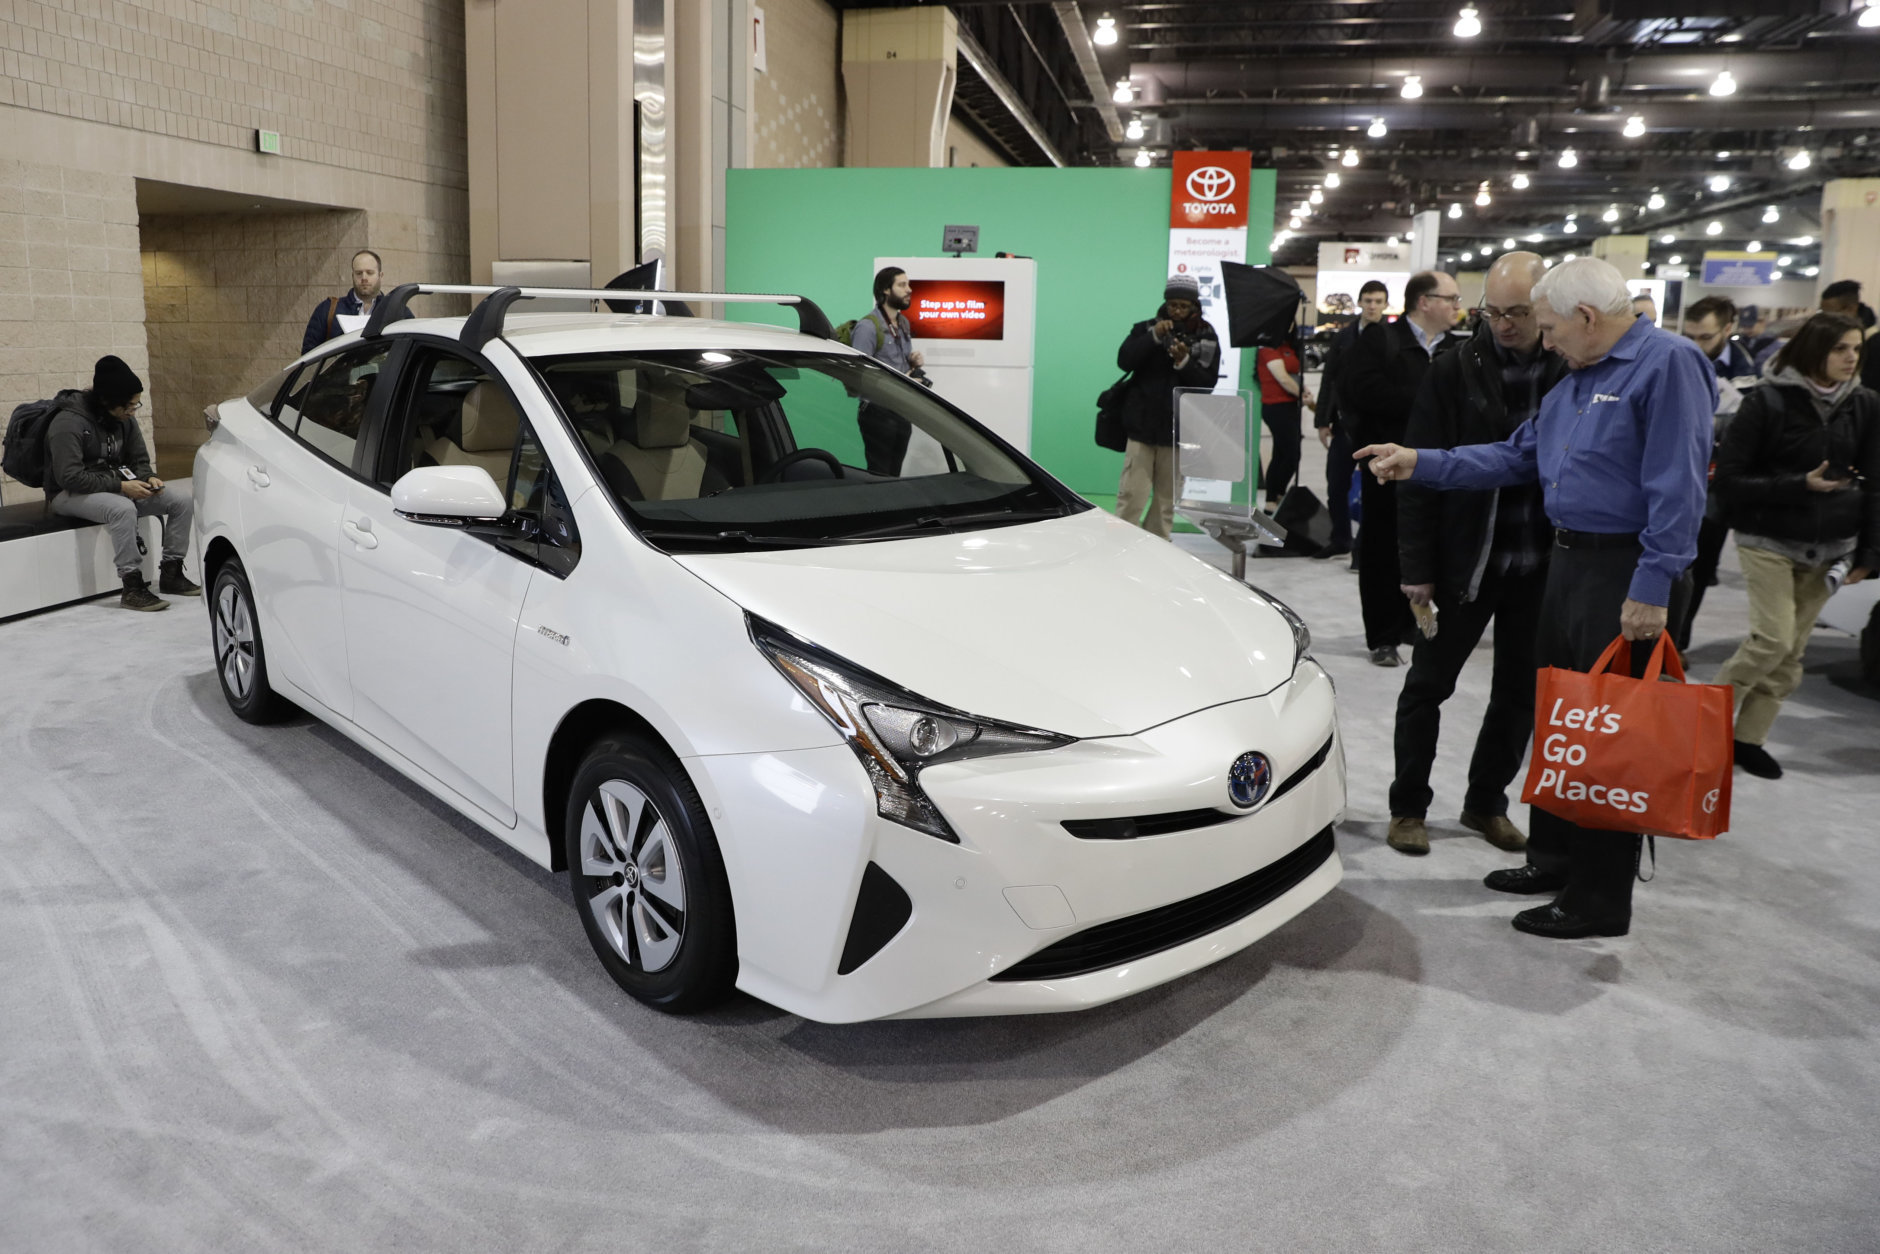 A Toyota Prius is seen at the Philadelphia Auto Show, Friday, Feb. 1, 2019, in Philadelphia. (AP Photo/Matt Slocum)